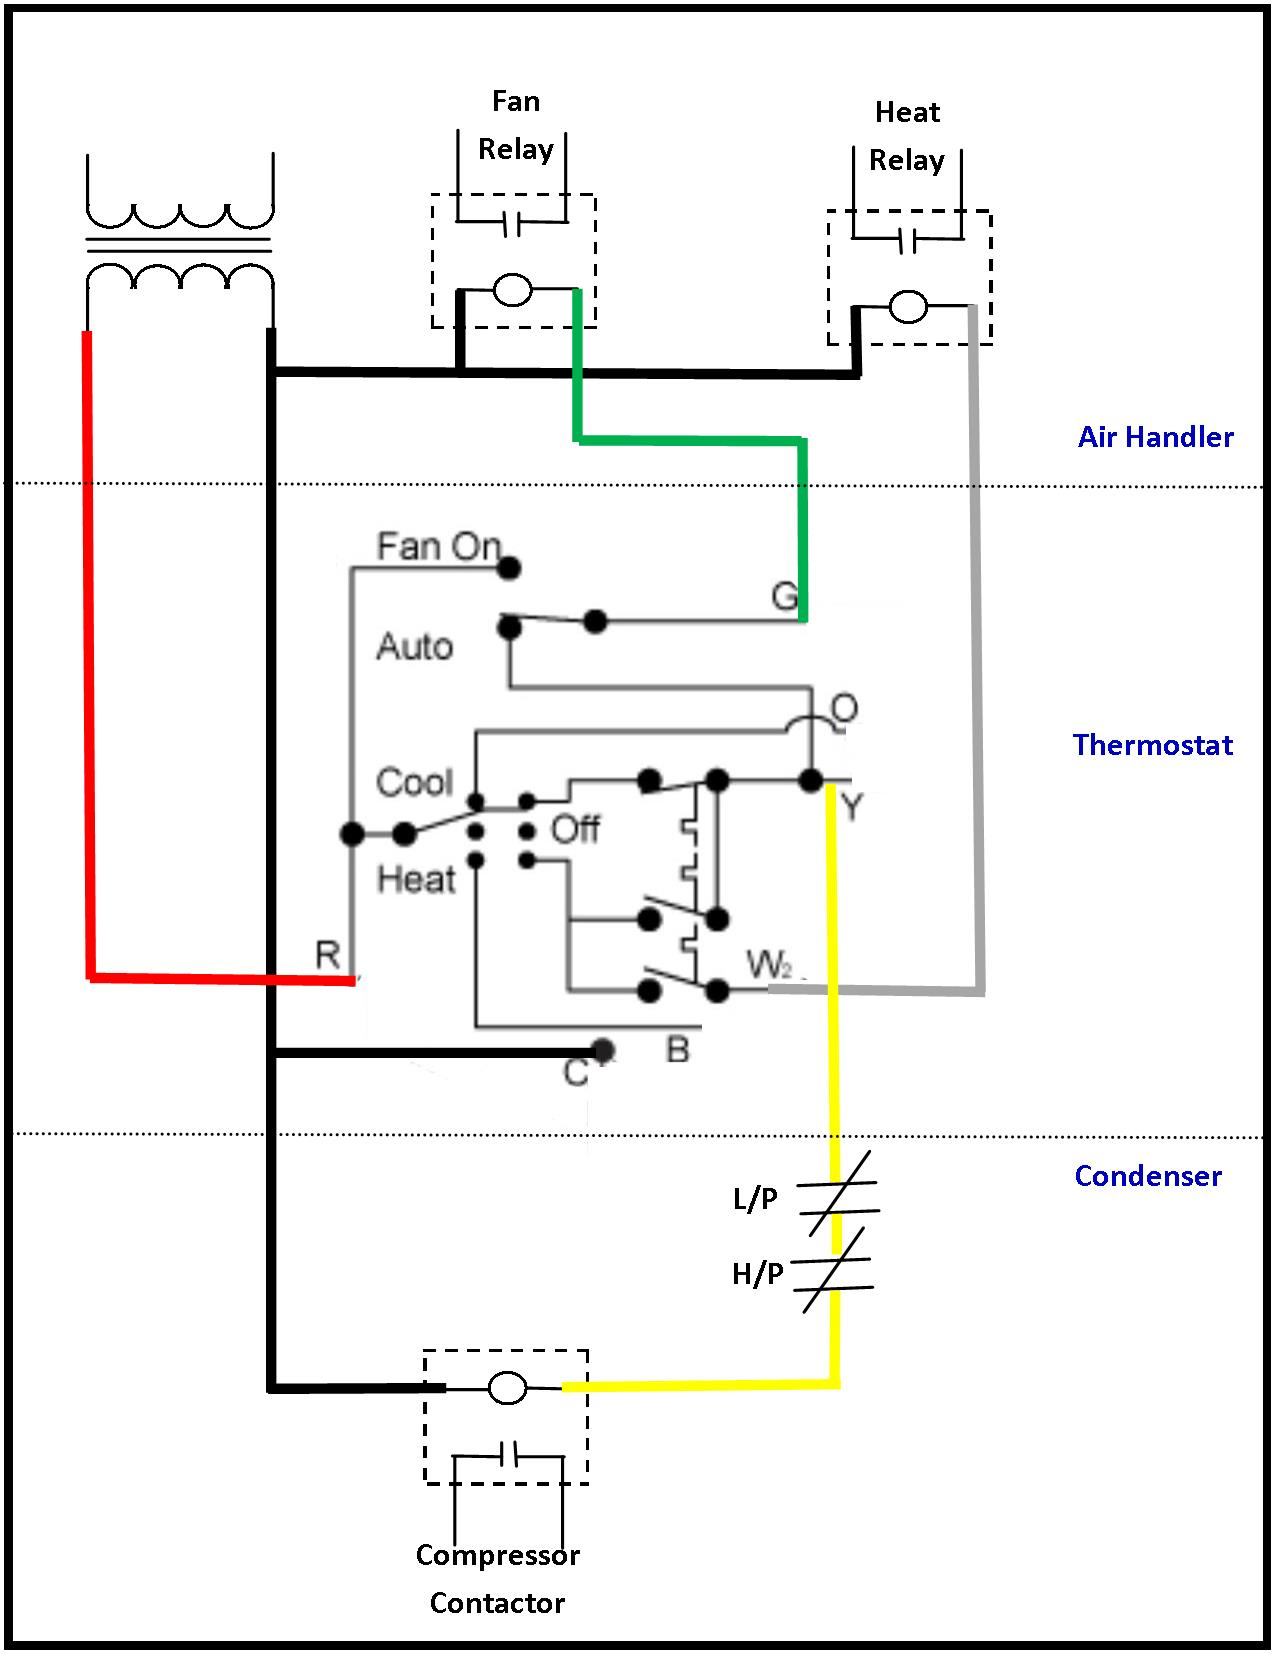 Wiring Diagram For A C Compressor - Wiring Diagram Detailed - Ac Compressor Wiring Diagram